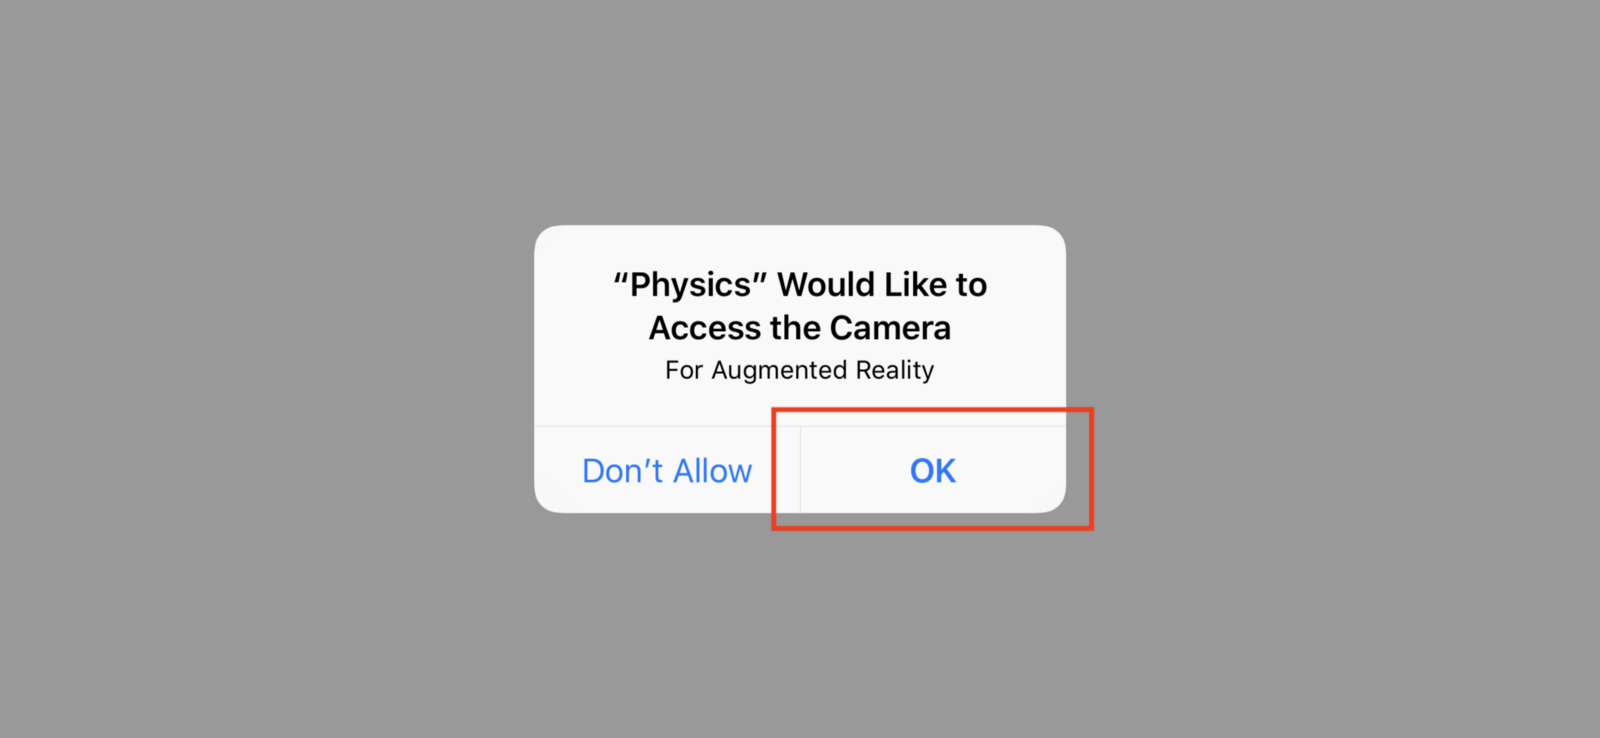 physics-camera-access